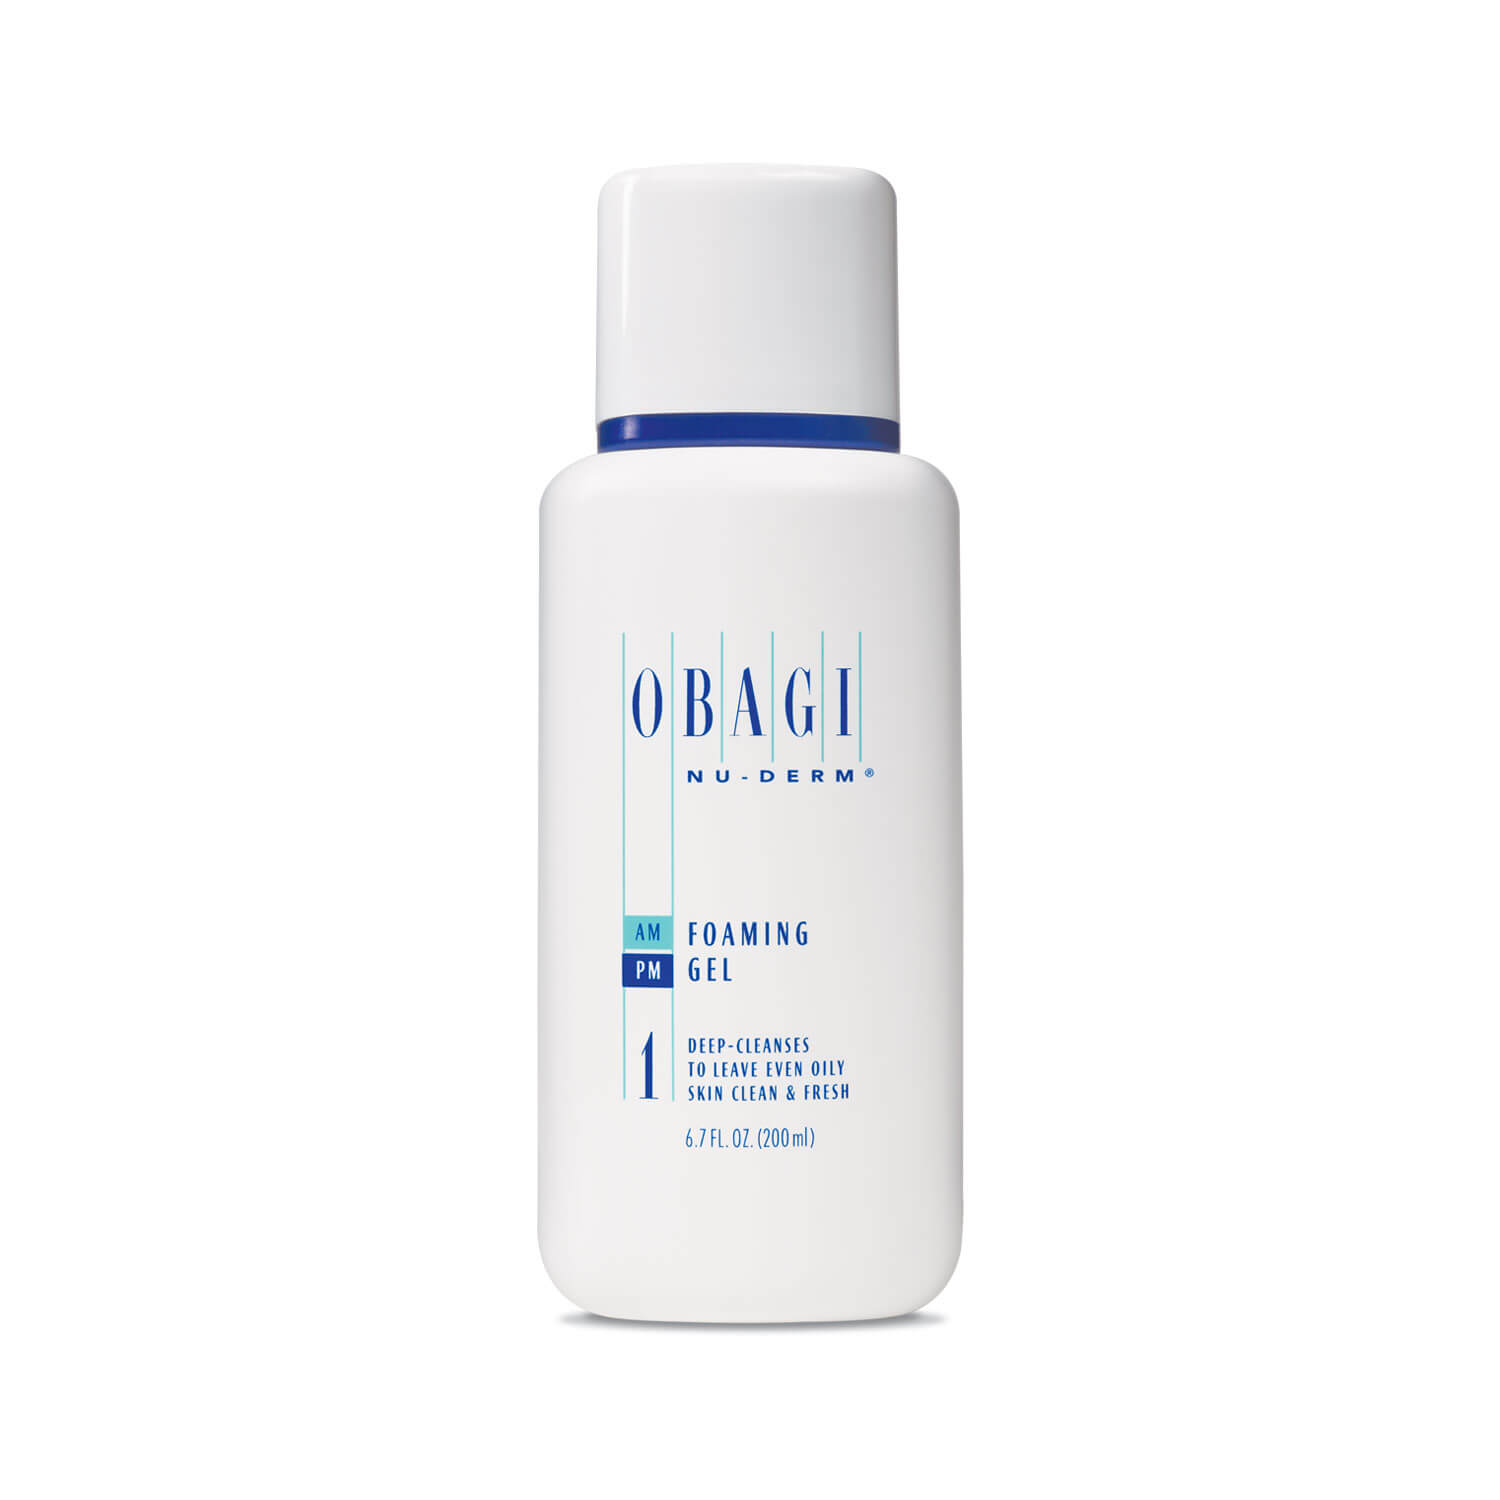 Obagi Nu-Derm Foaming Gel Face Wash